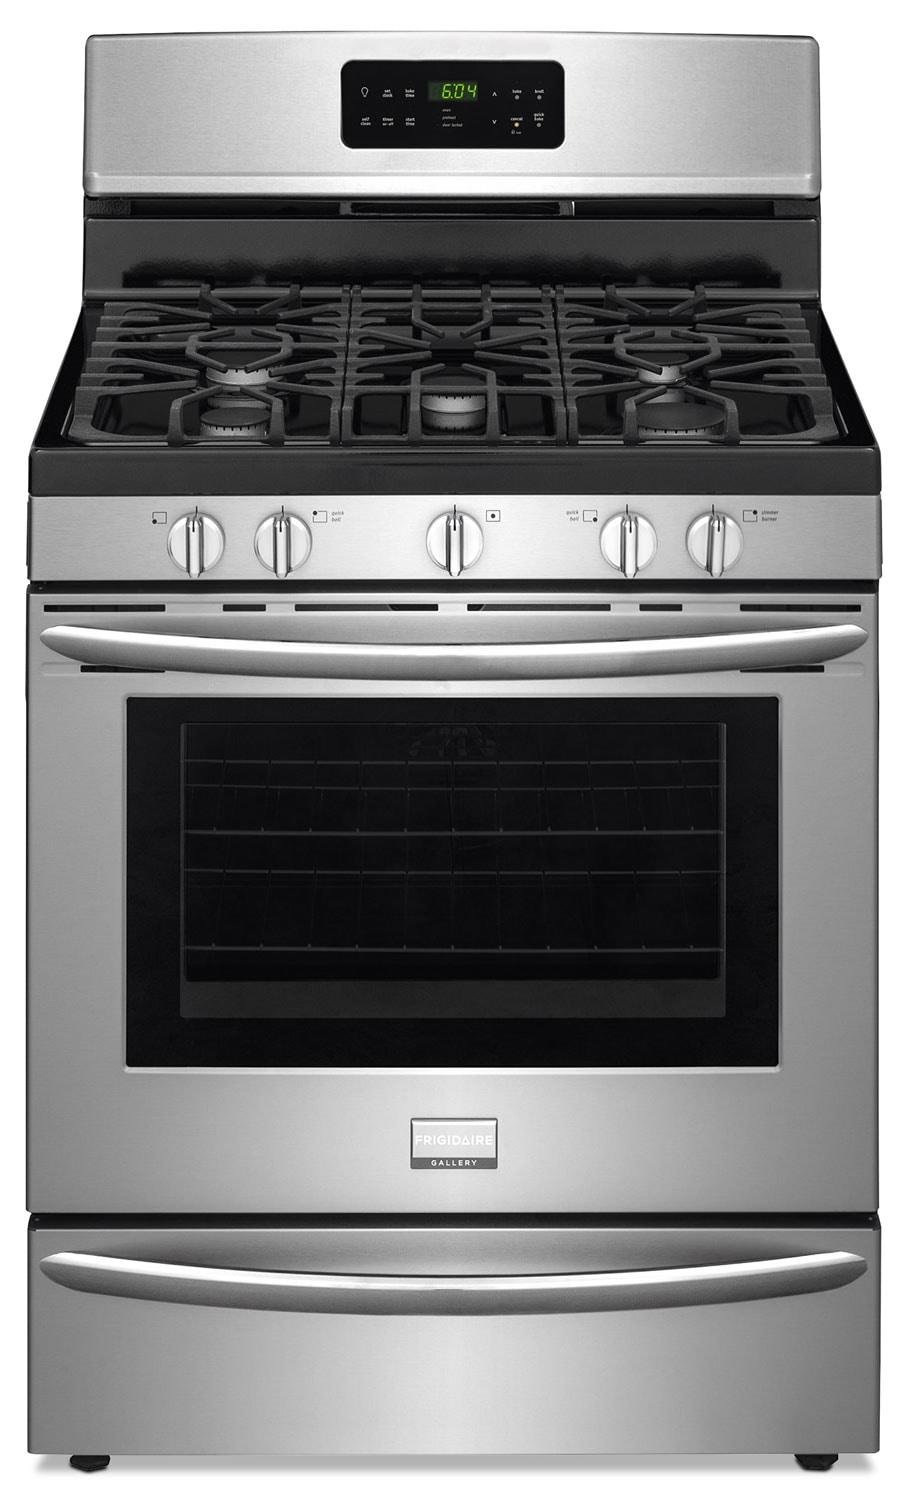 Cooking Products - Frigidaire Gallery Stainless Steel Freestanding Gas Convection Range (5.0 Cu. Ft.) - FGGF3035RF